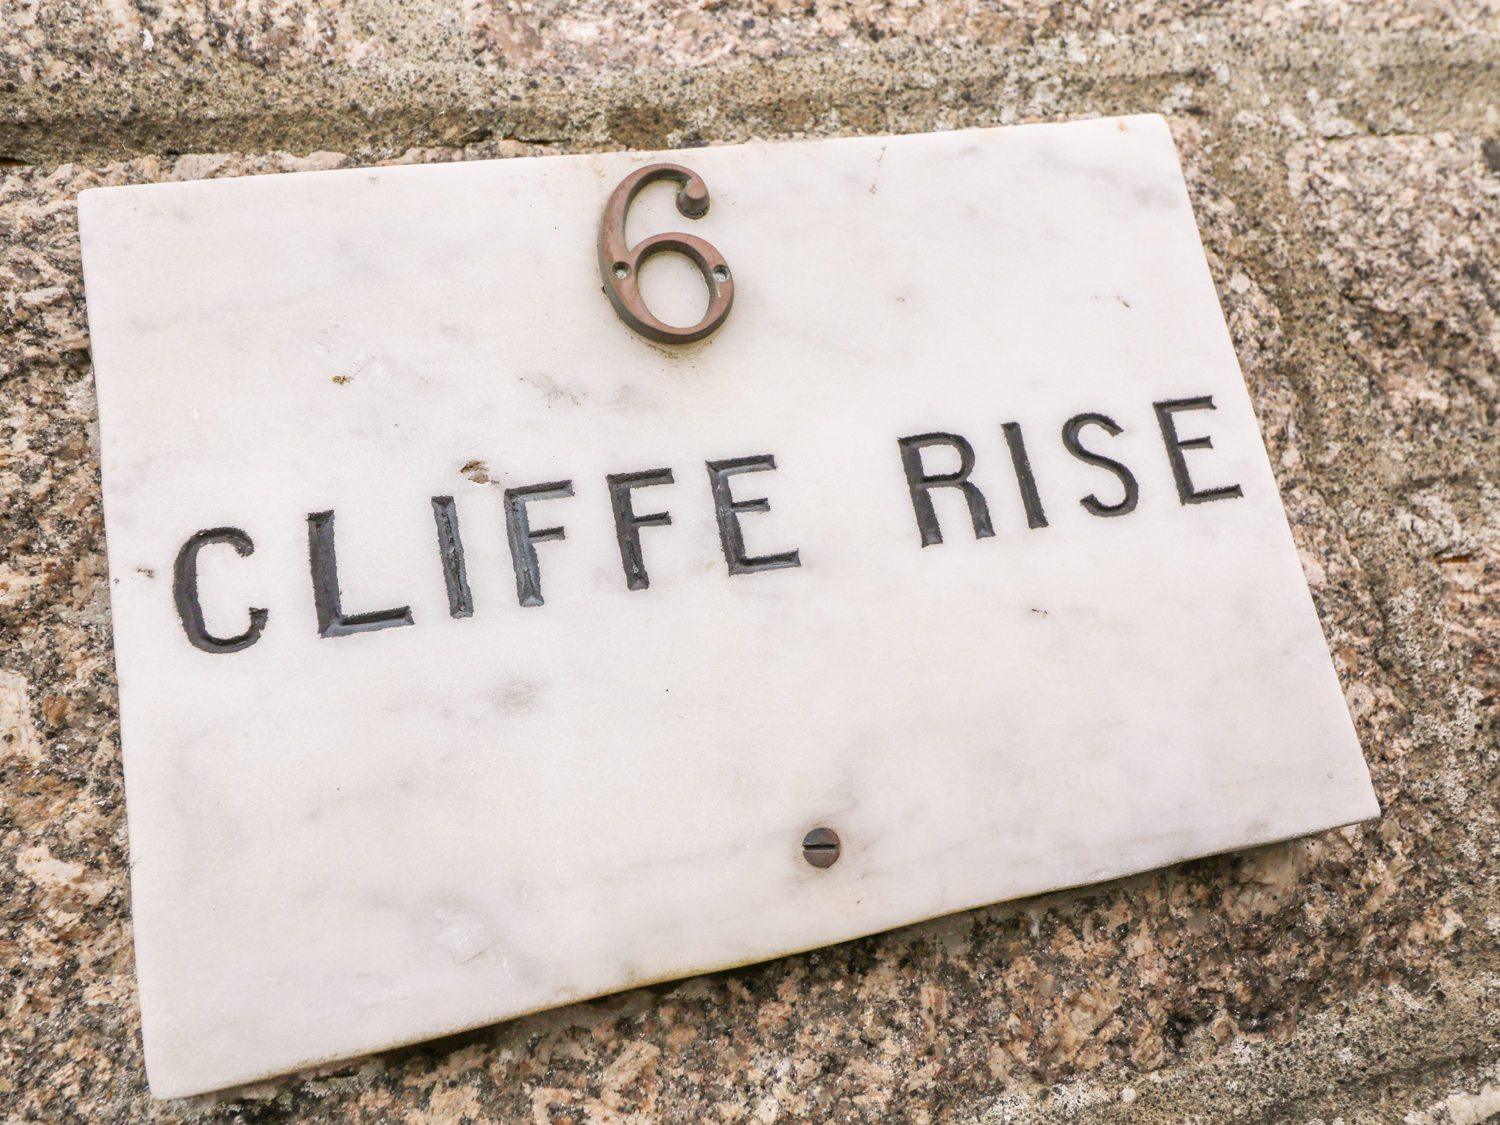 Cliffe Rise